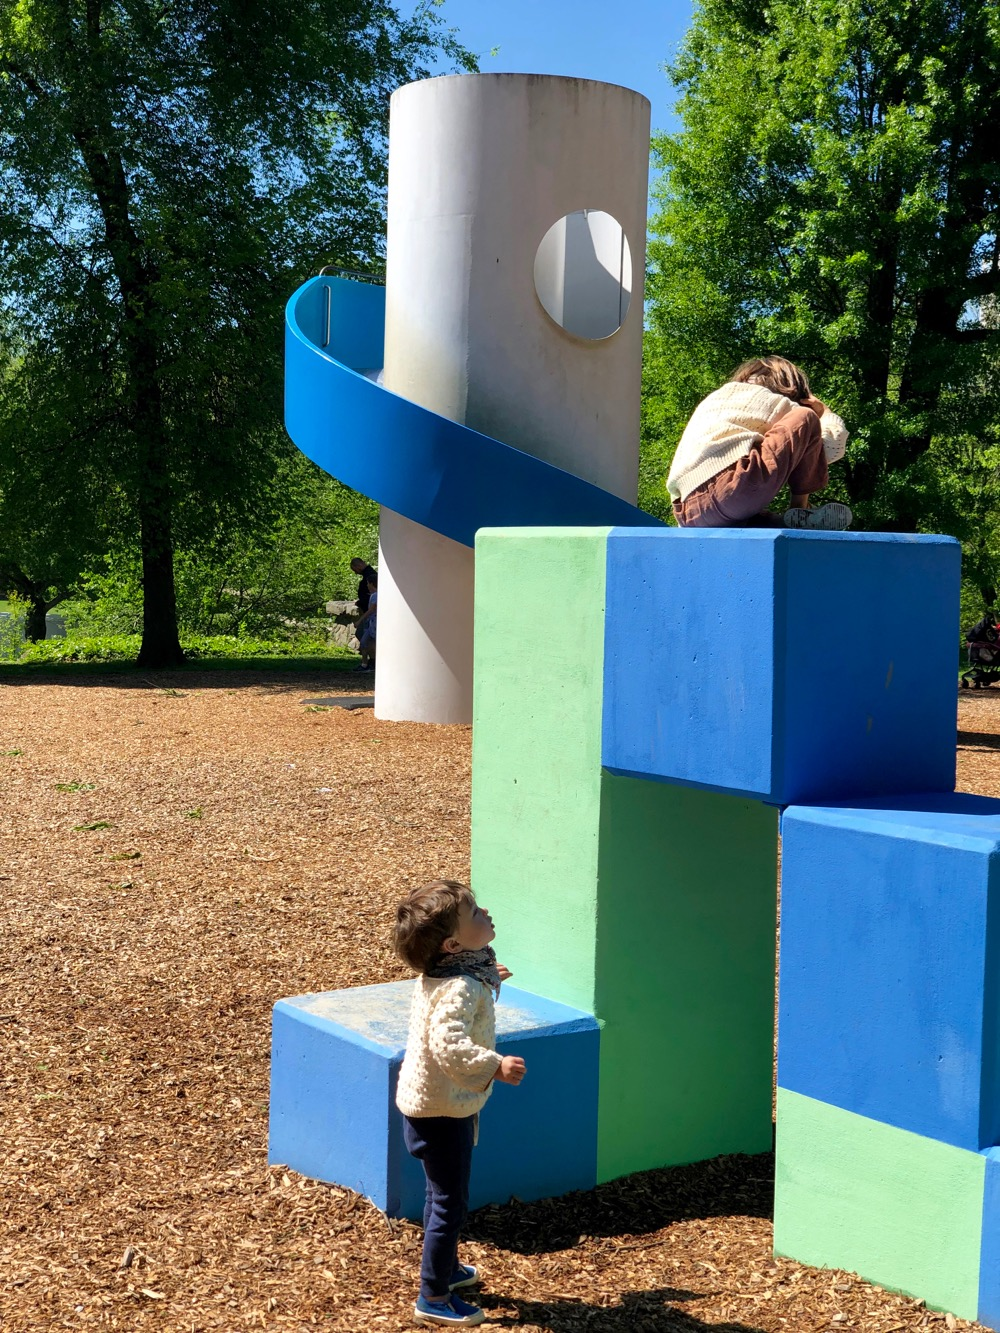 Two children on the climbing blocks at Noguchi's Playscapes